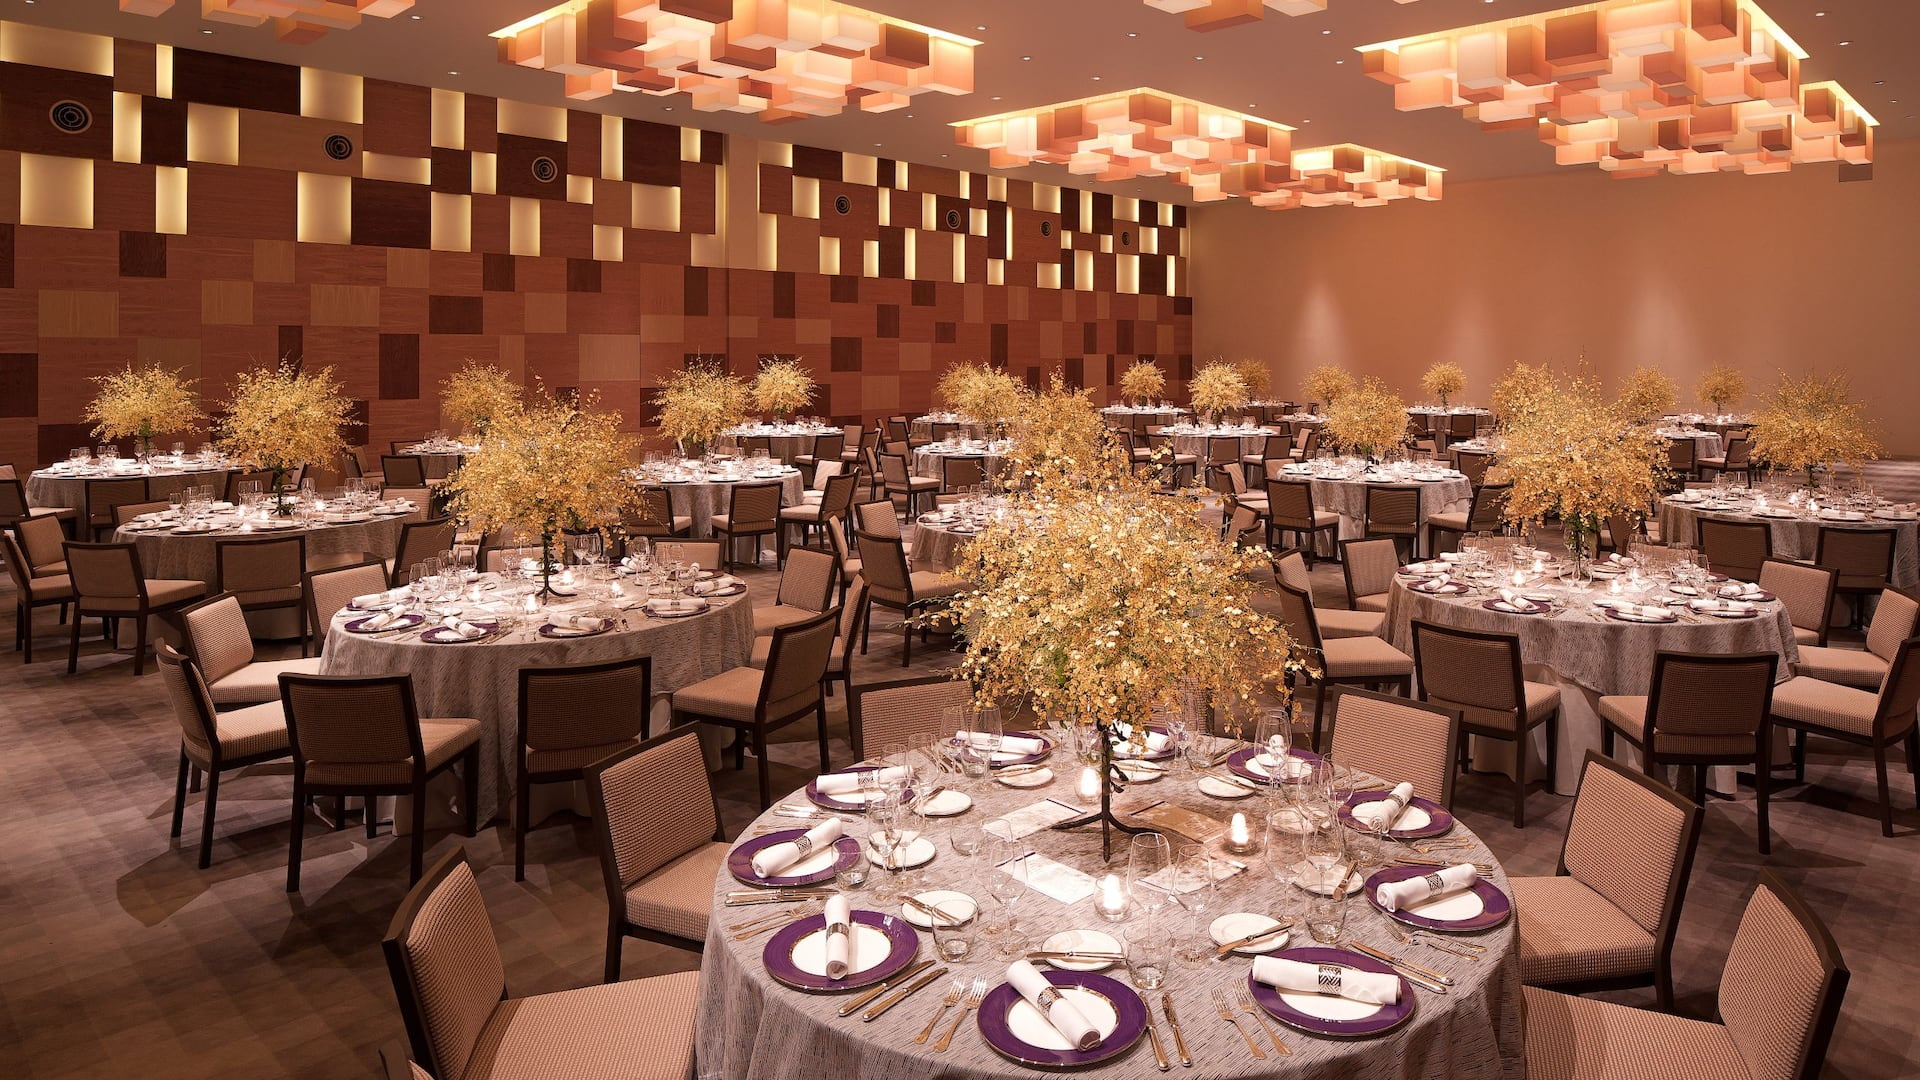 Special Occasions & Event Venues The Grand Hyatt, Singapore, Orchard Road